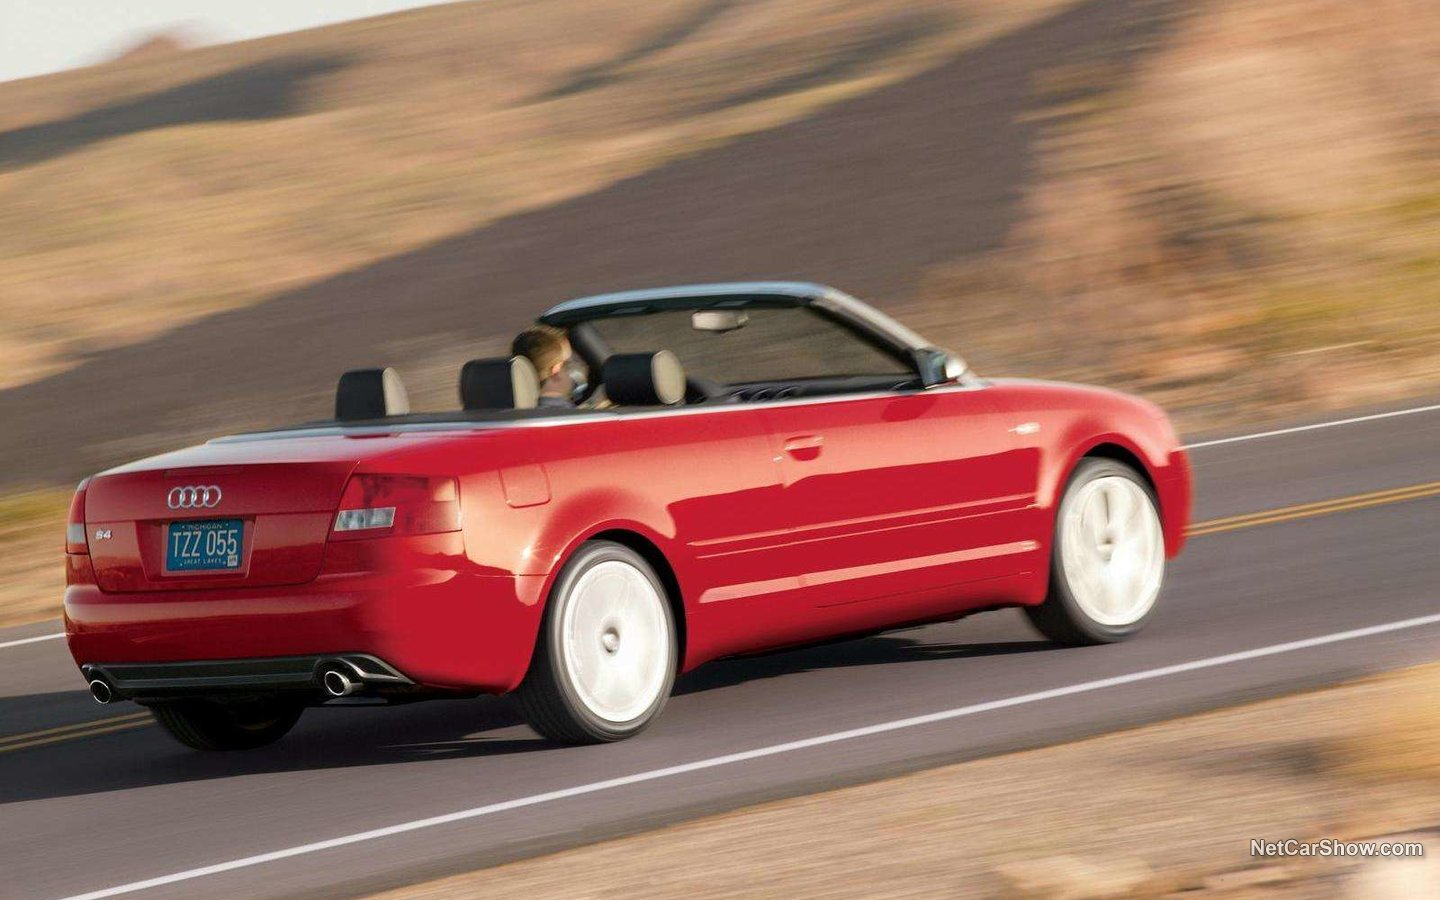 Audi A4 S4 Cabriolet 2005 6a950db8